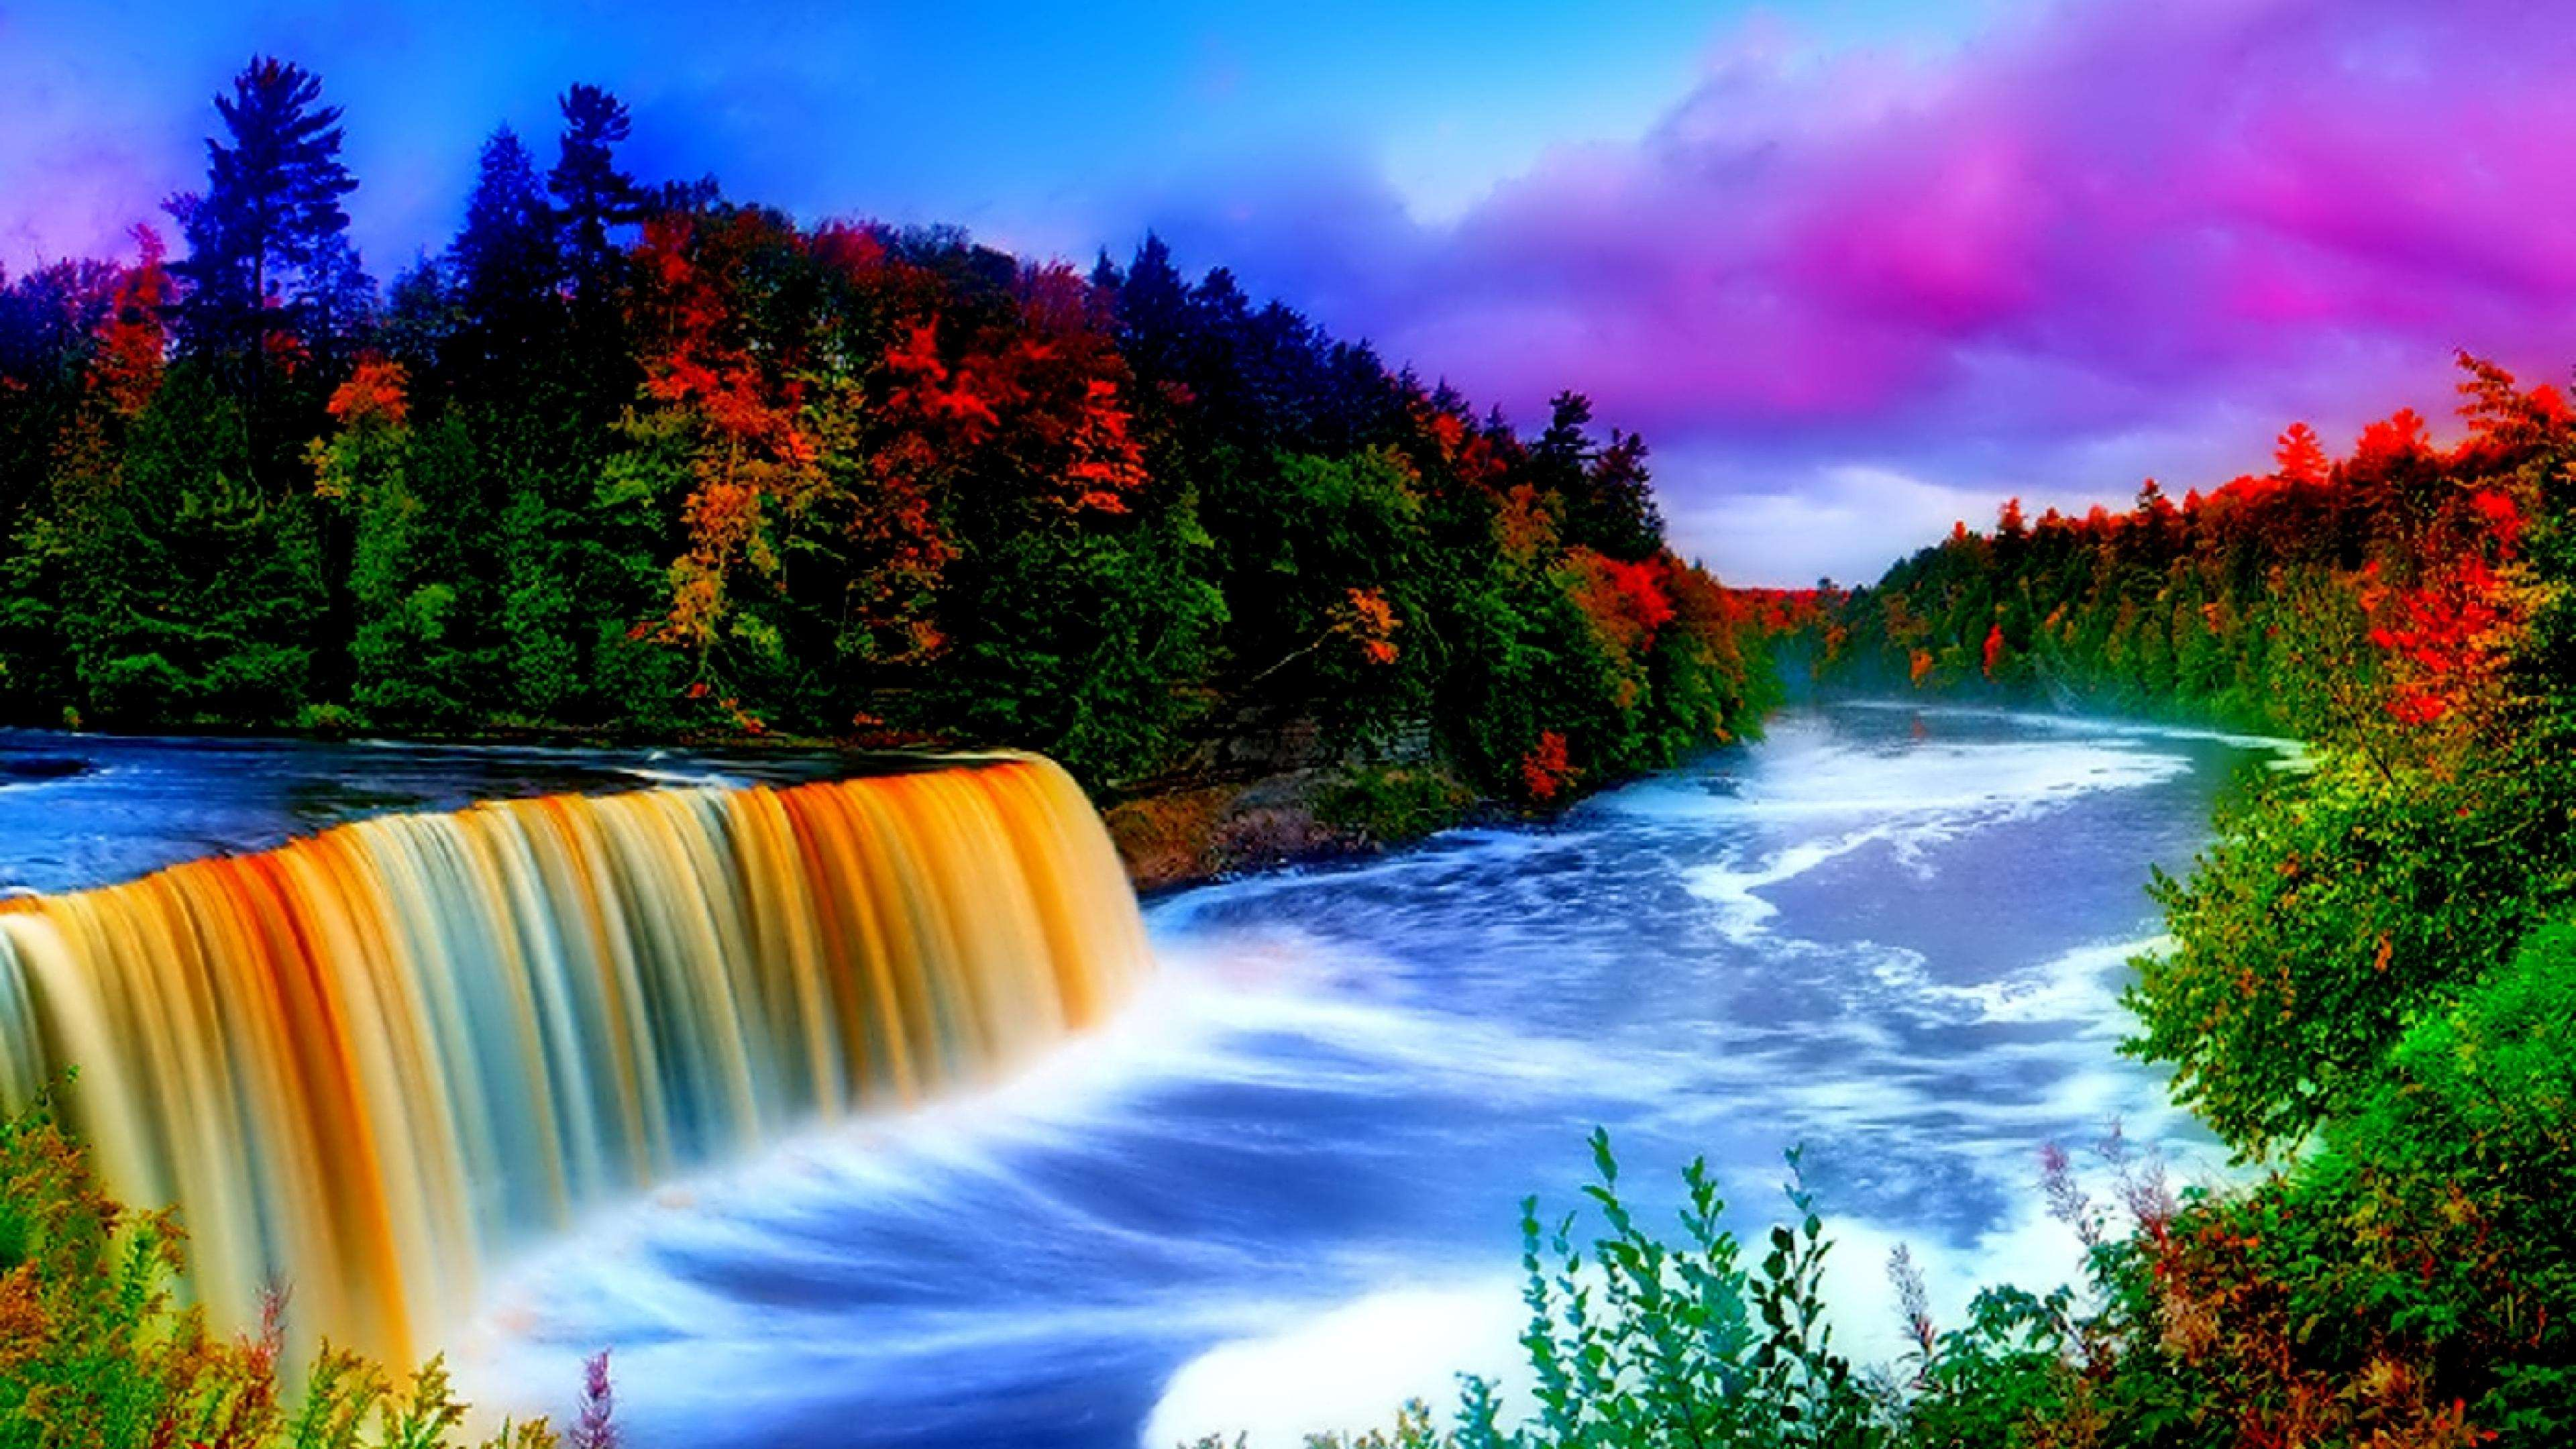 Nature waterfall hd wallpapers 6 hd wallpapers - Love nature wallpaper hd ...